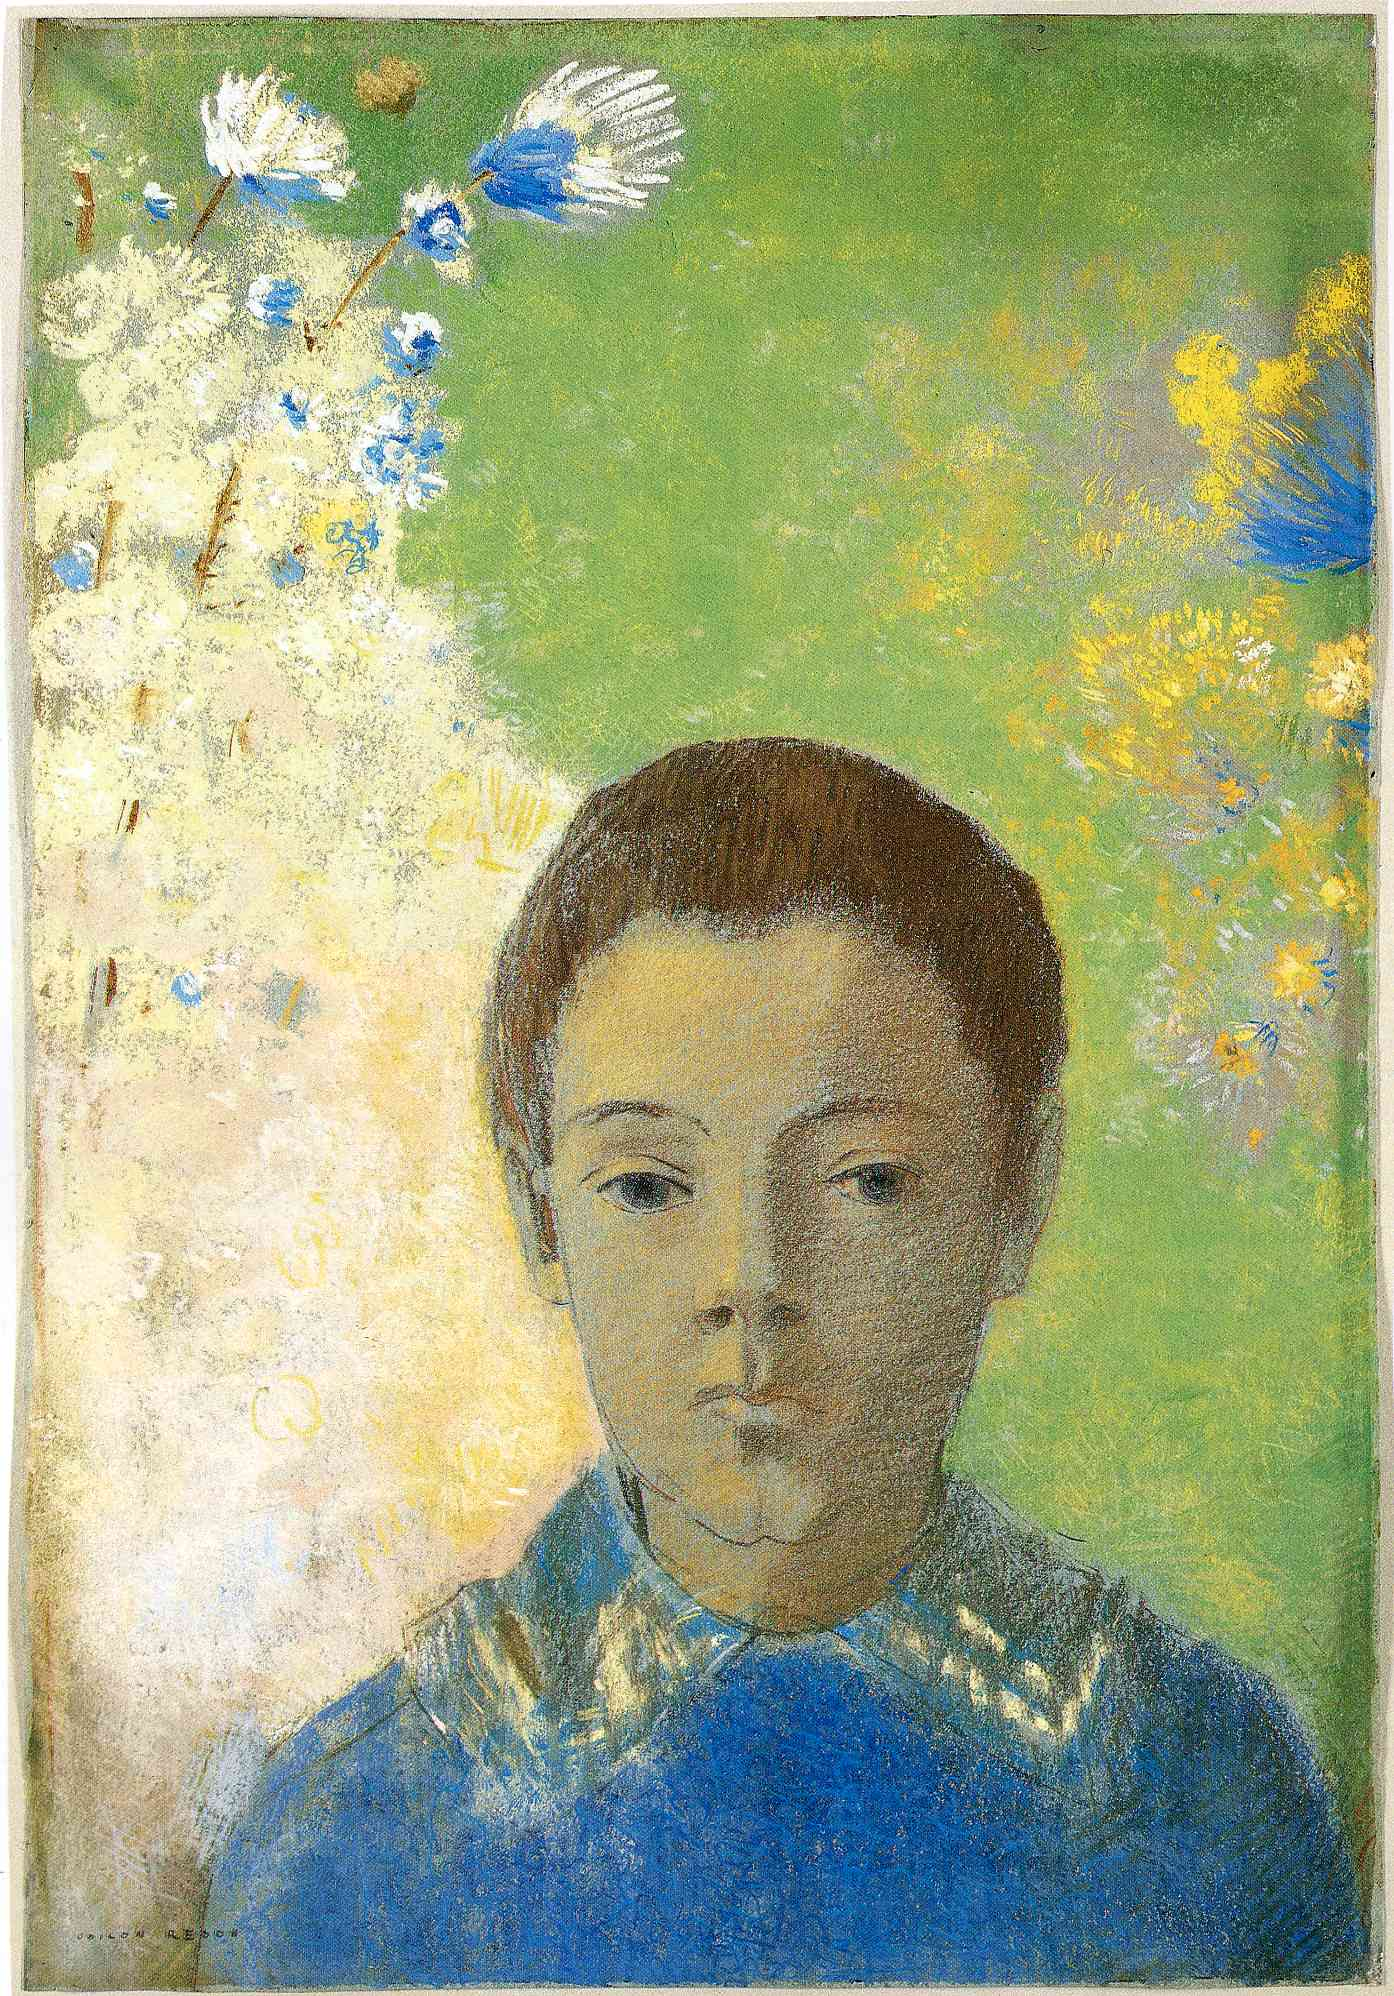 Odilon Redon, Ari Redon, 1897, pastel, Art Institute of Chicago, Illinois